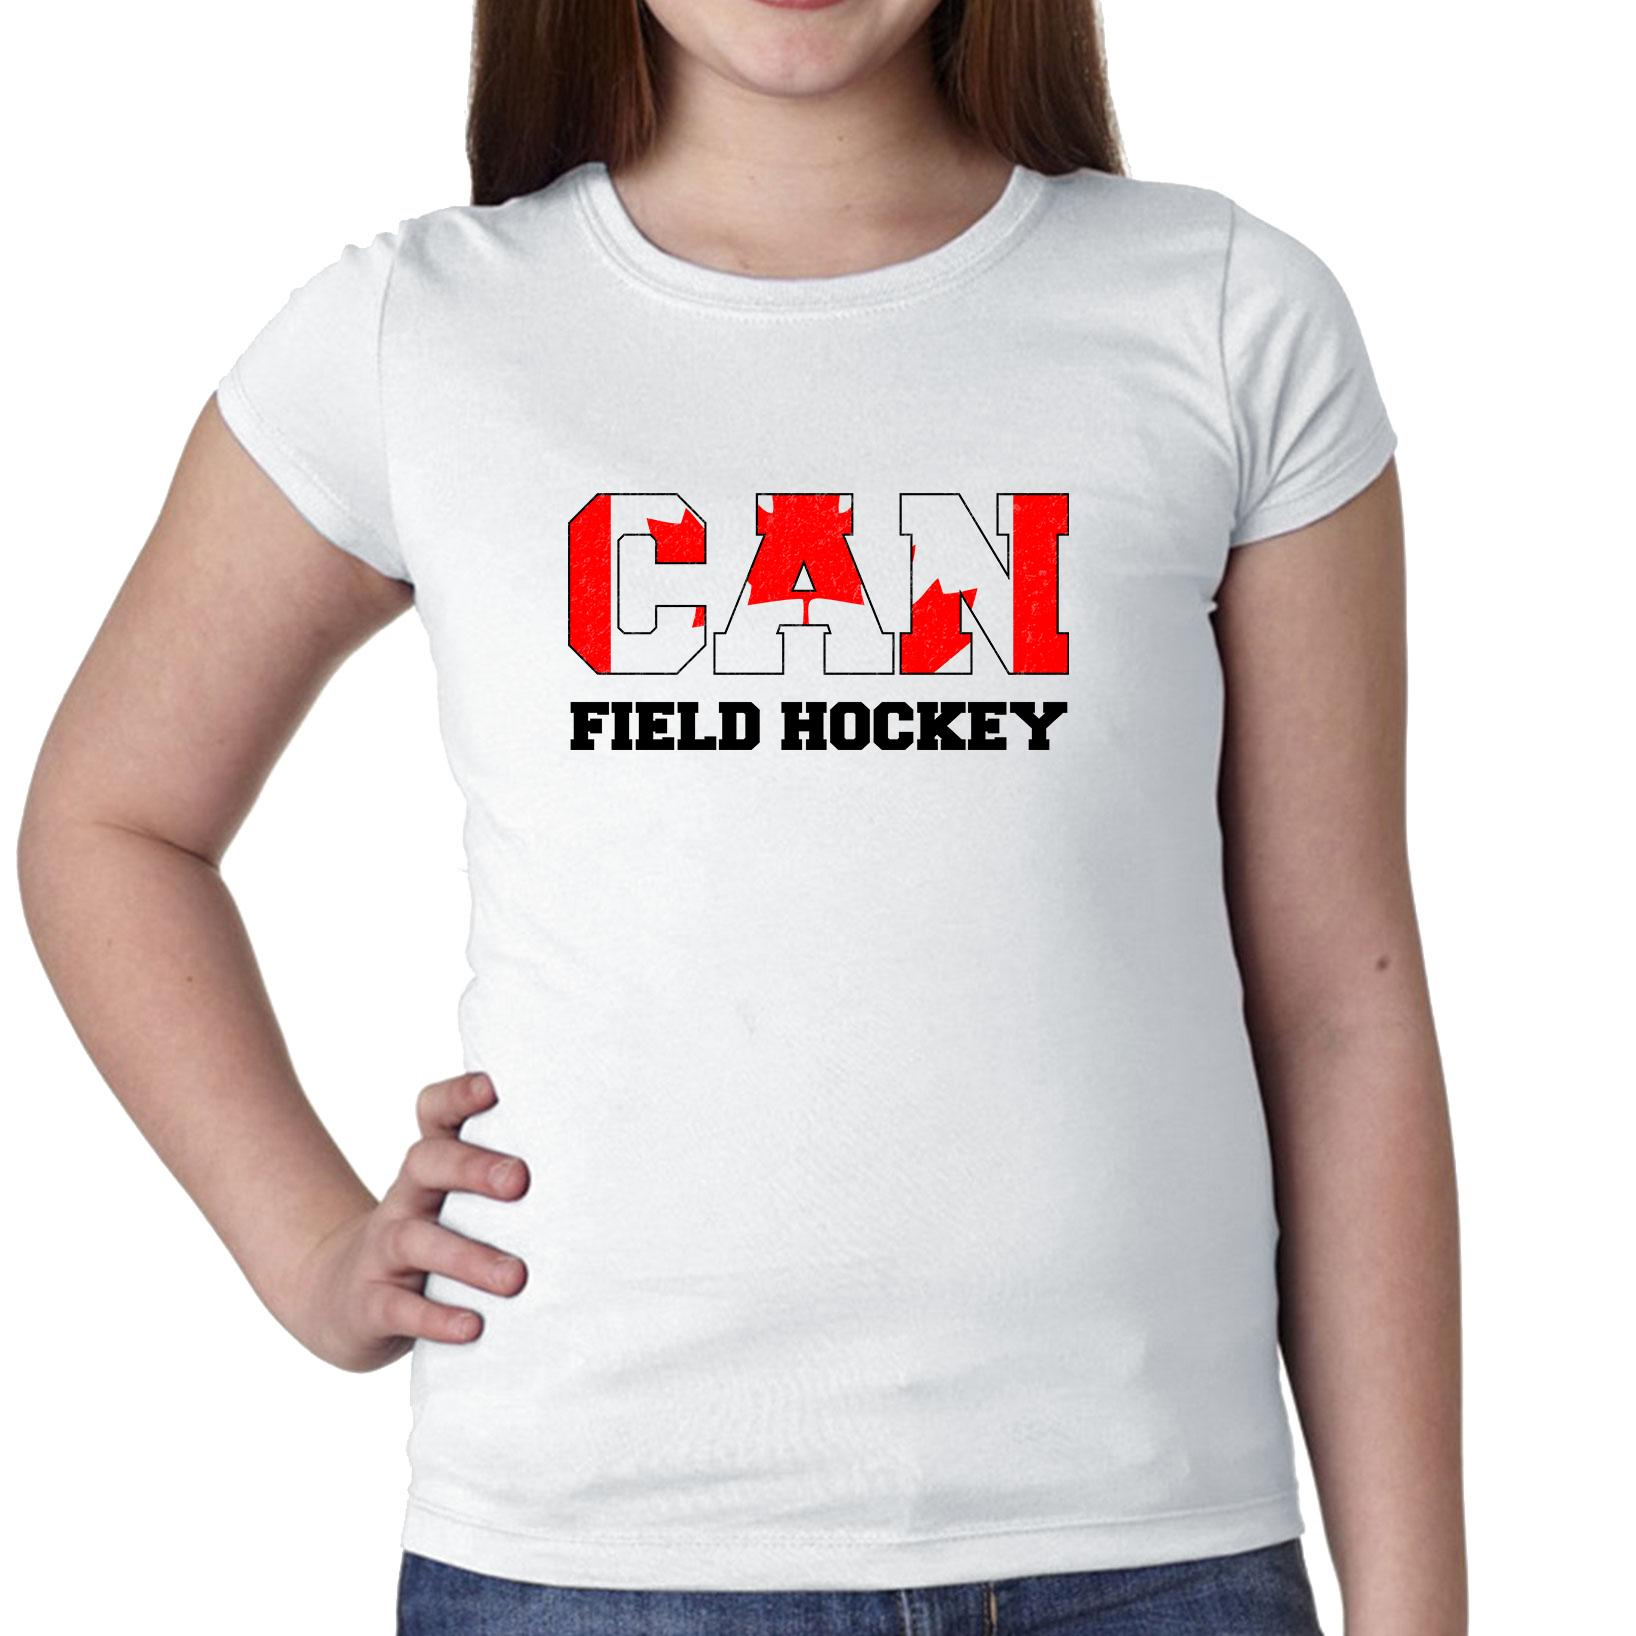 Canada Field Hockey Olympic Games Rio Flag Girl's Cotton Youth T-Shirt by Hollywood Thread